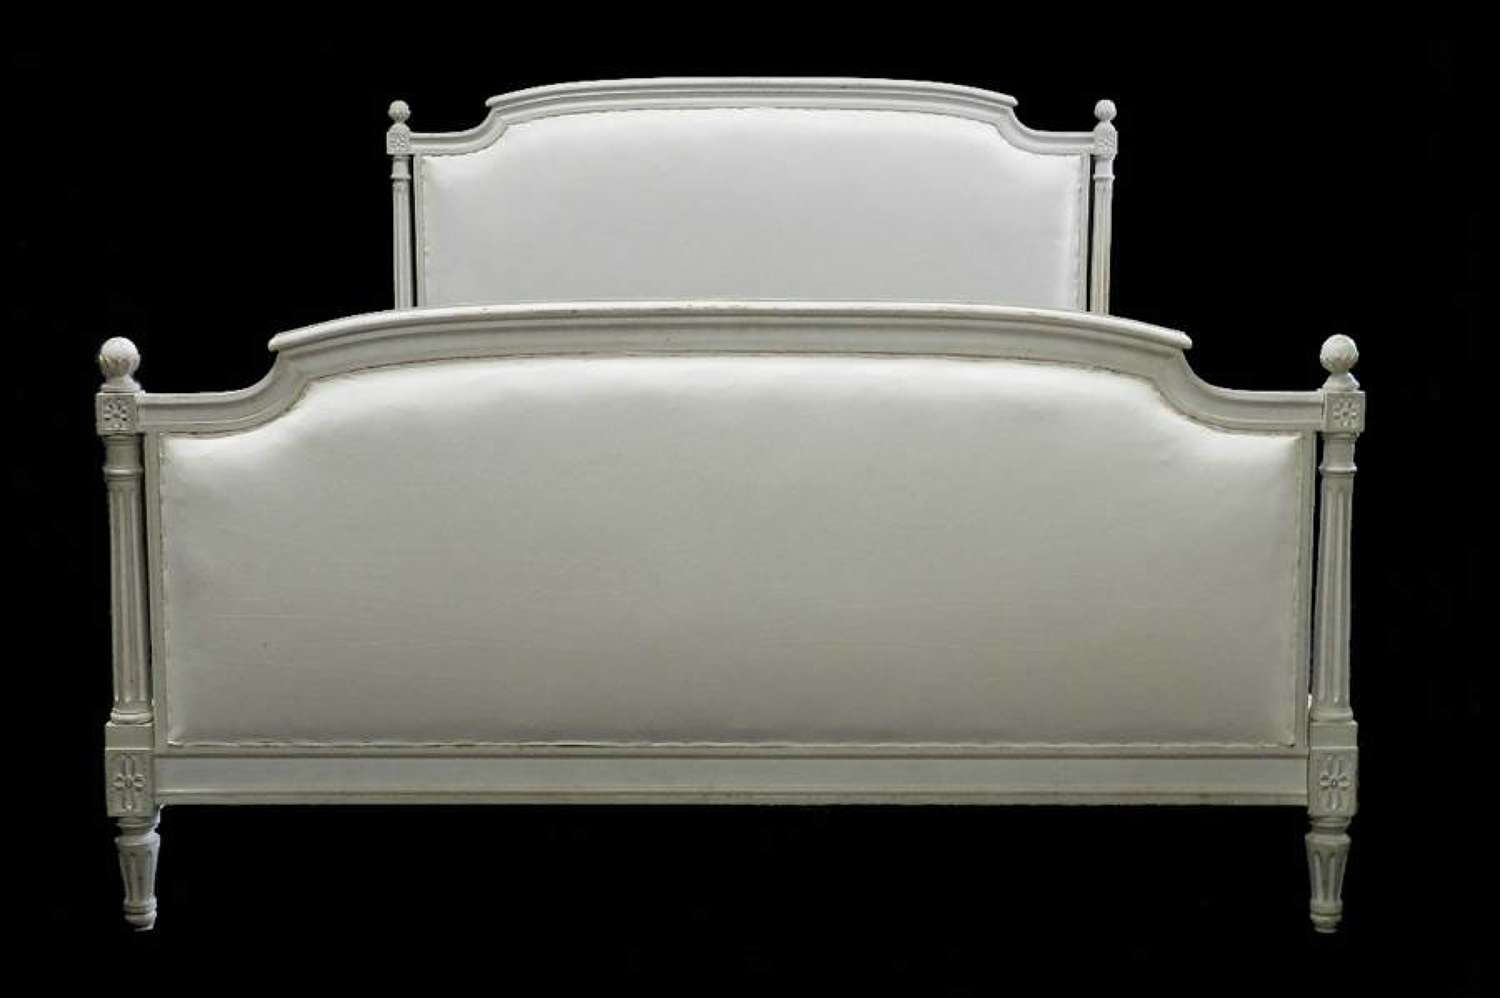 Early Vintage French Louis XVI Double Kingsize Bed to calico top covers of choice